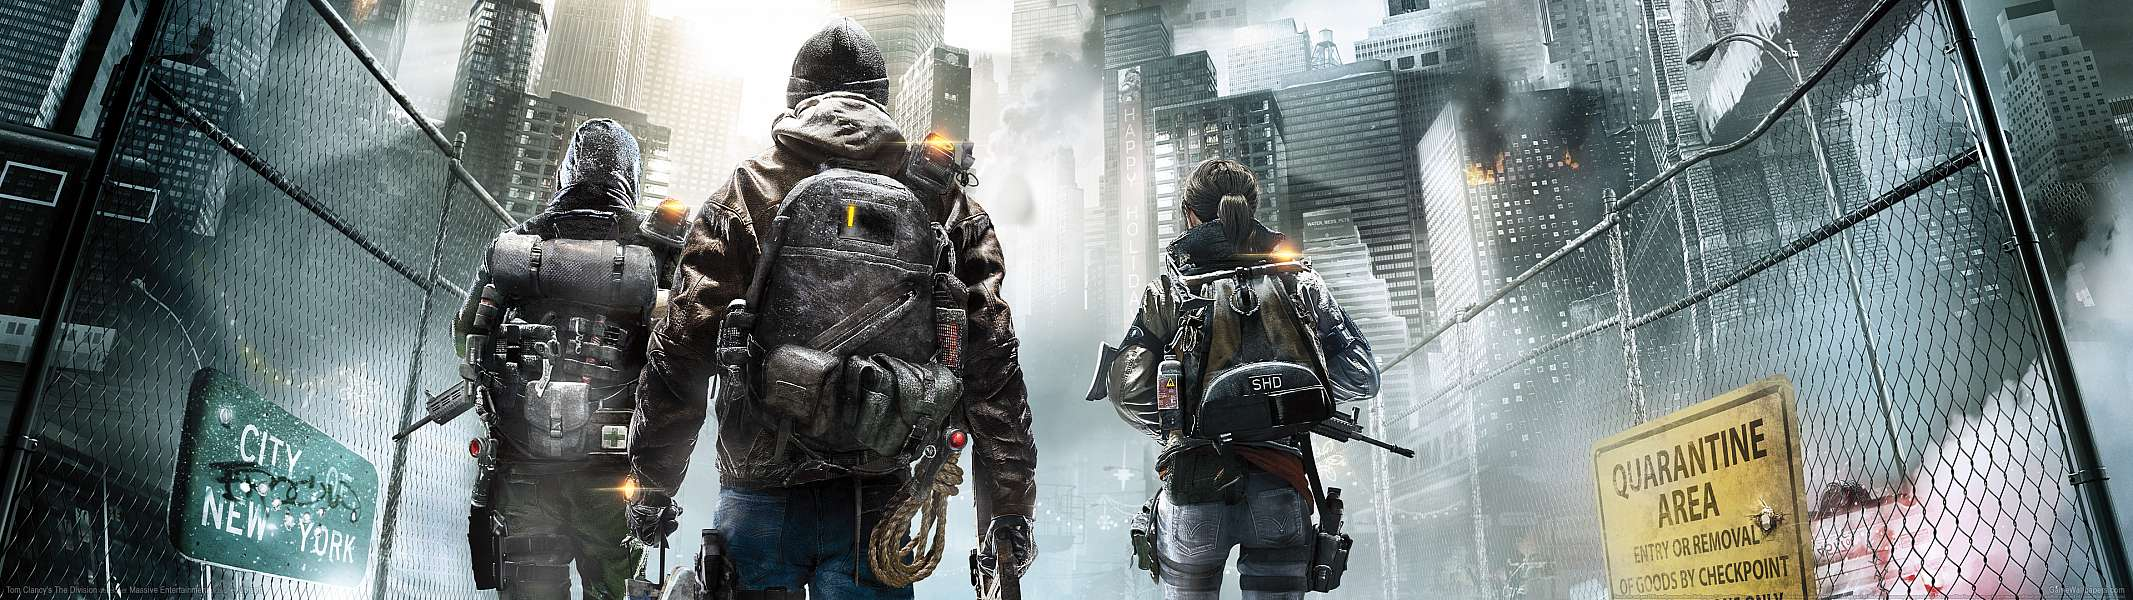 Tom Clancy's The Division dual screen achtergrond